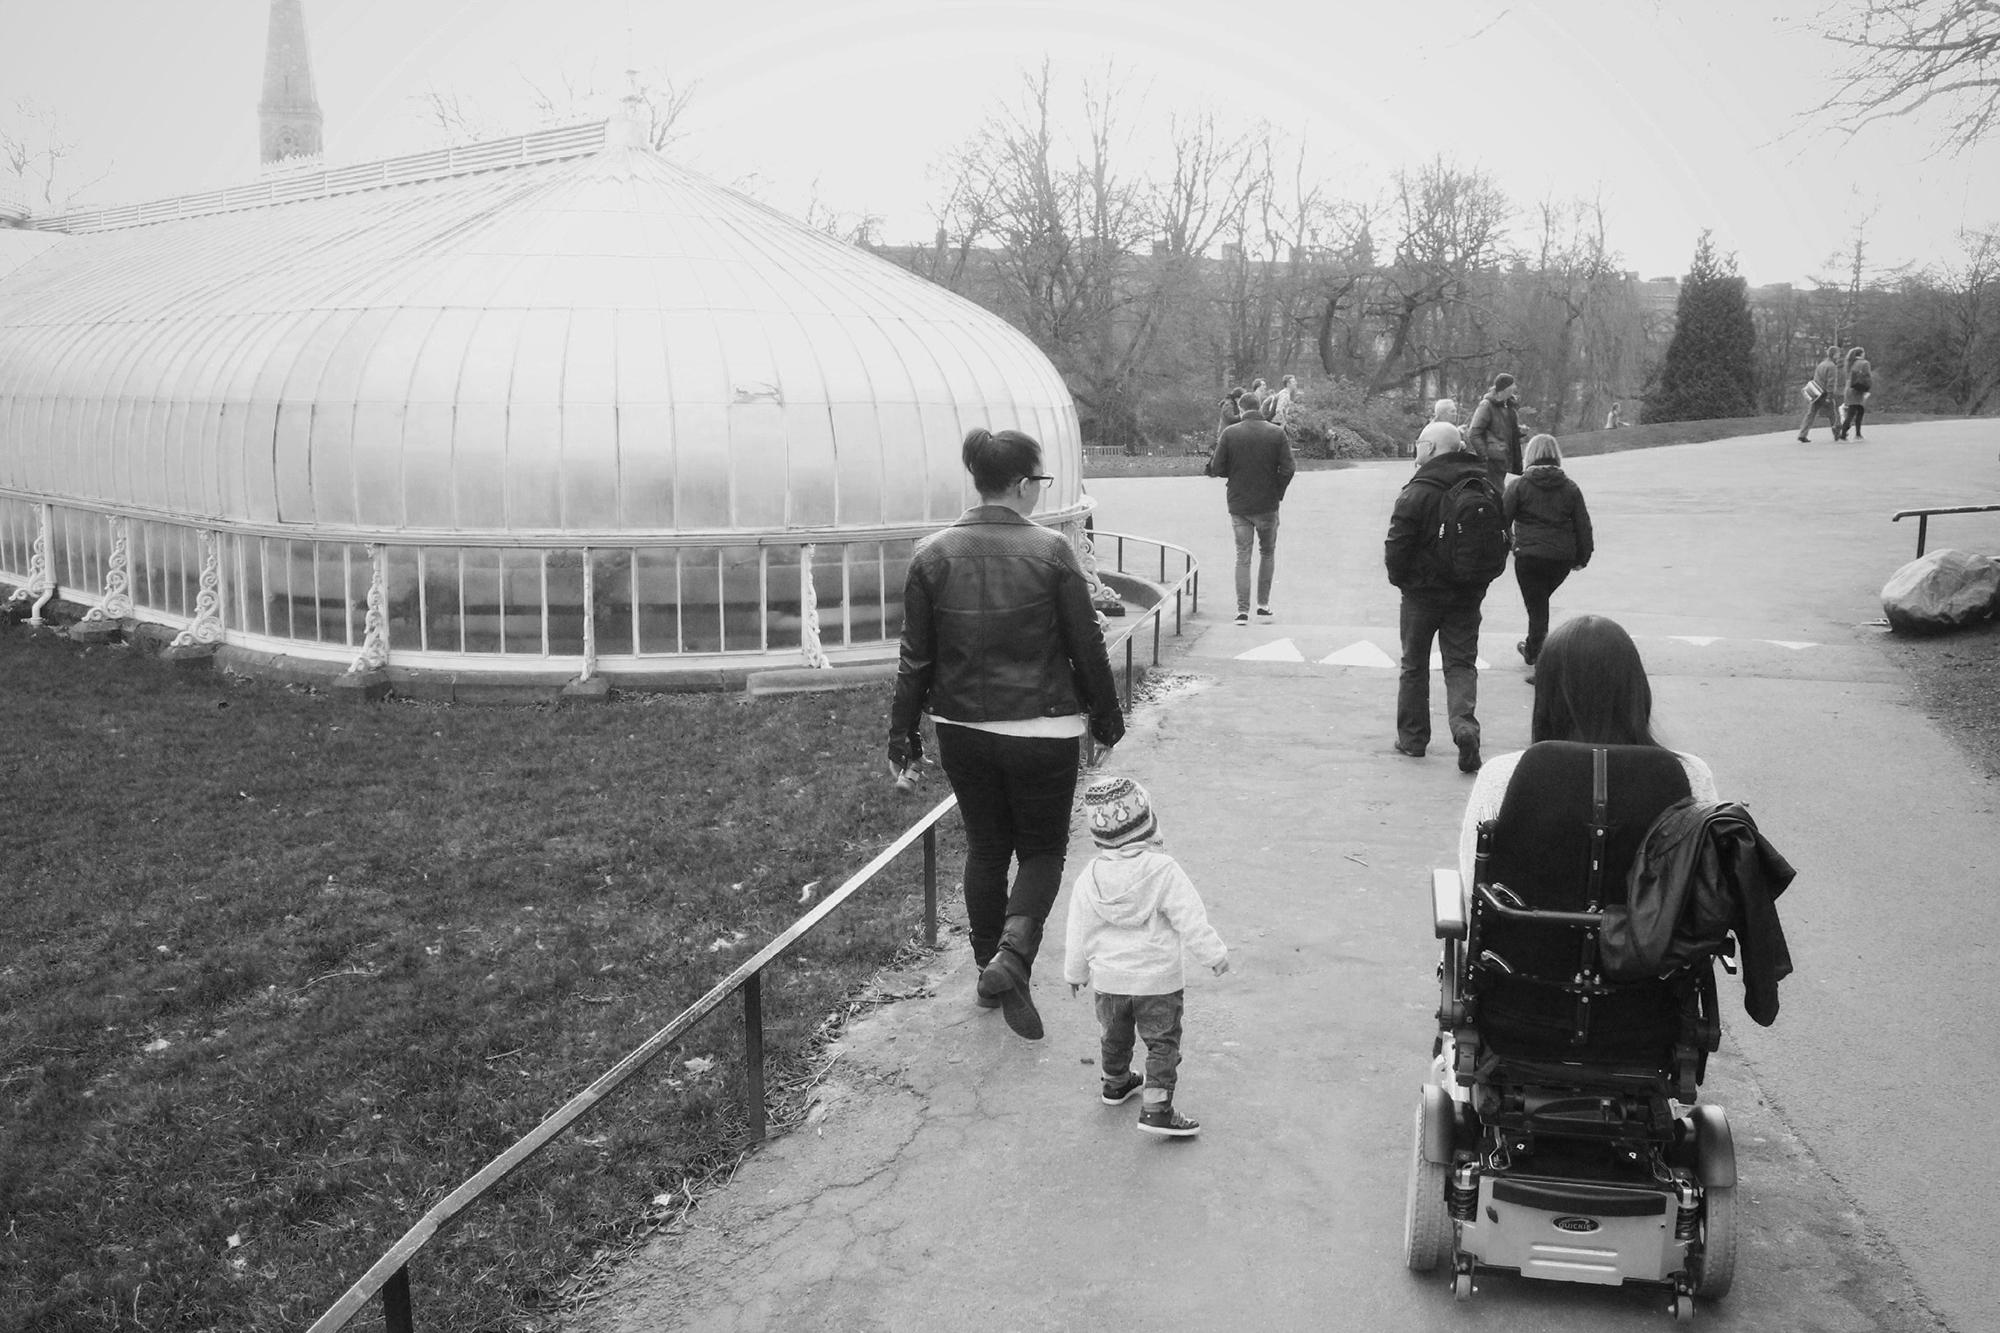 Emma in her power wheelchair, her sister and nephew walking beside her. They have their backs to the camera heading towards the Glasgow Botanic Gardens in the background.